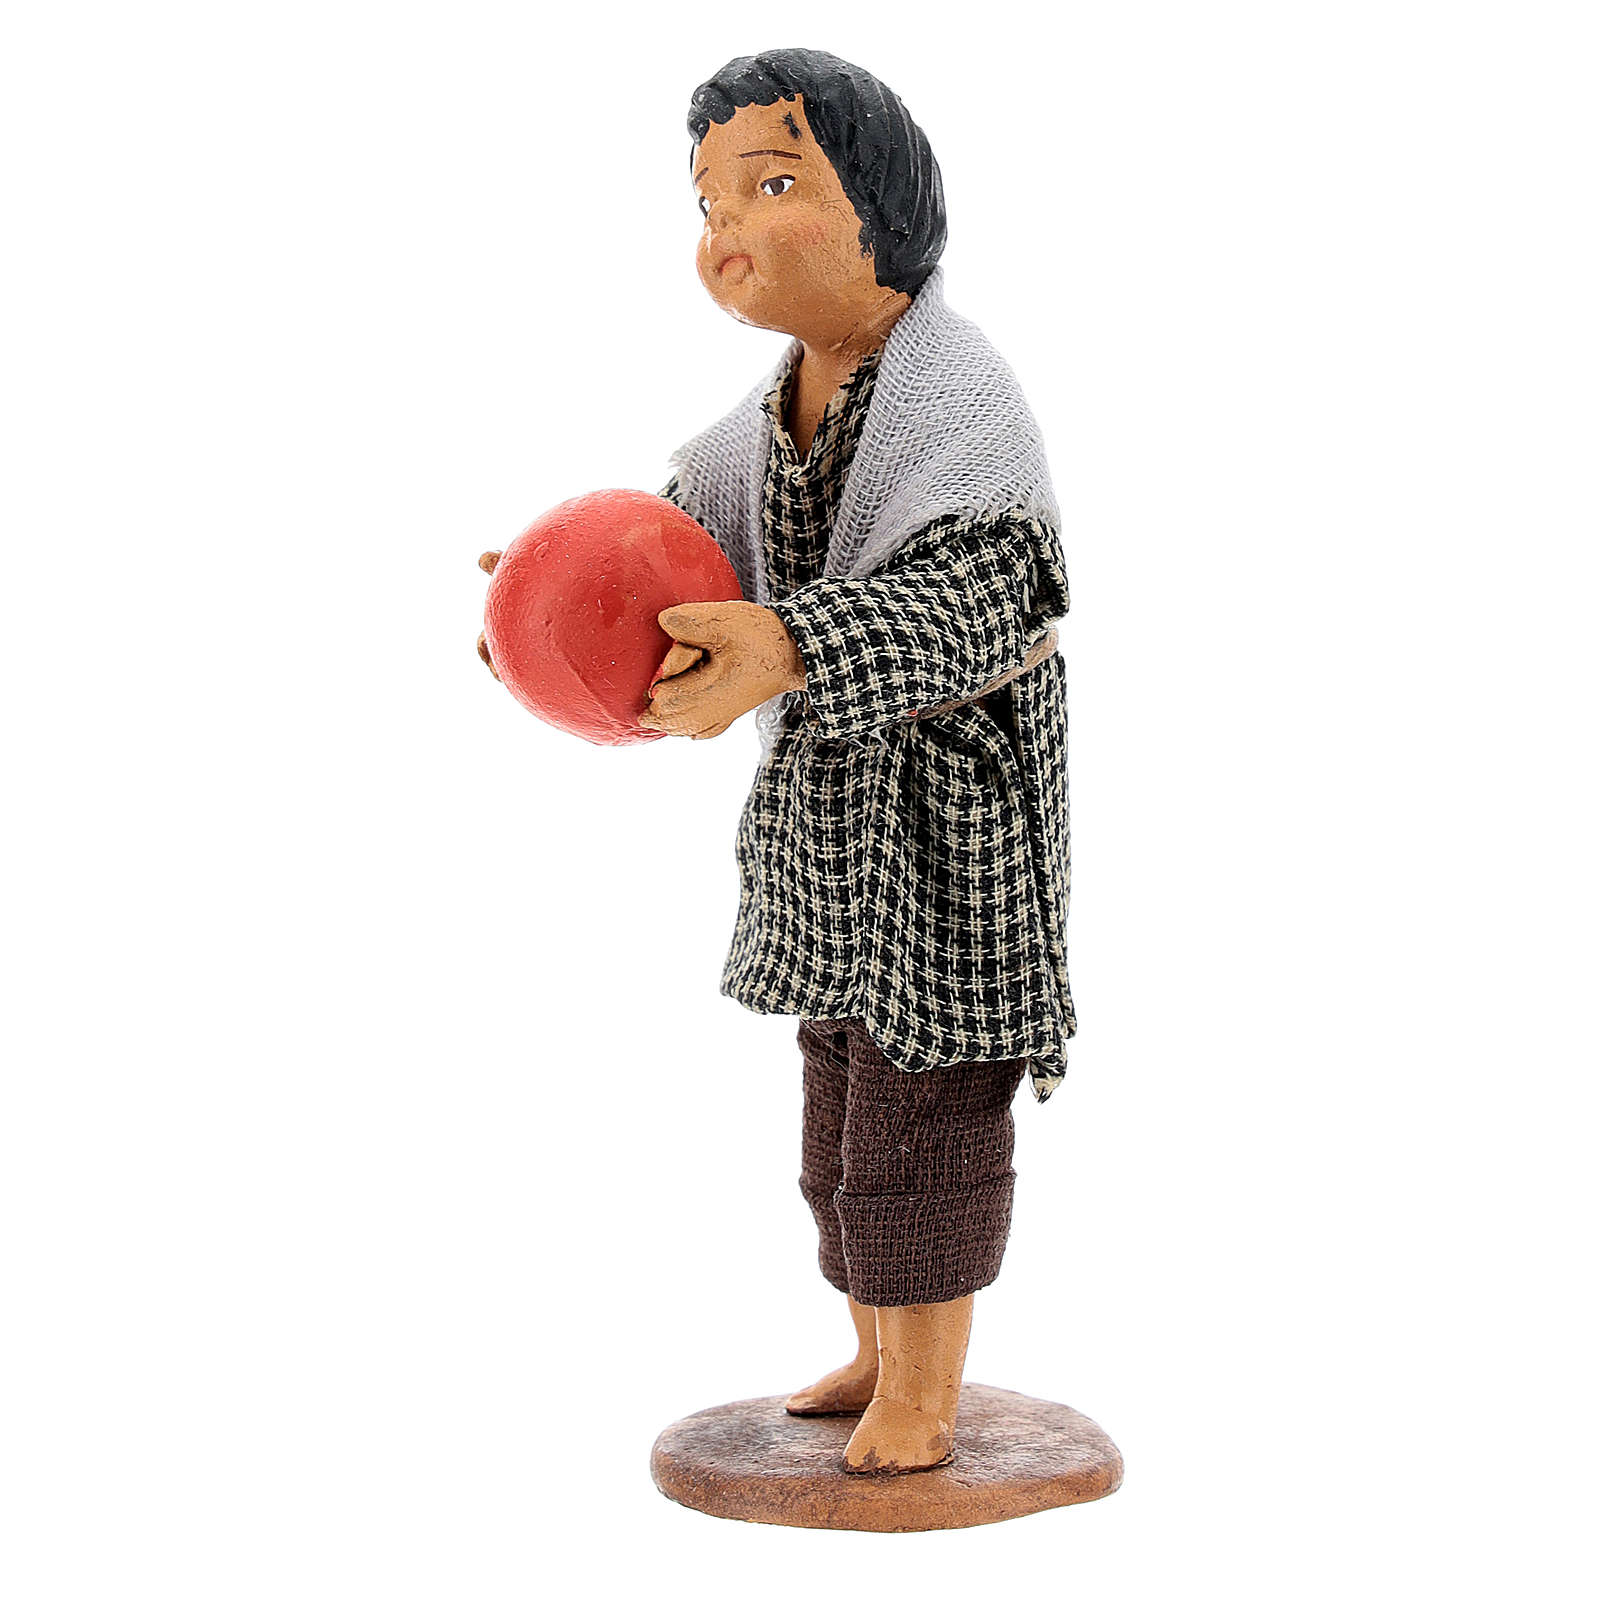 Child with ball,  nativity scene figurine 14 cm 4